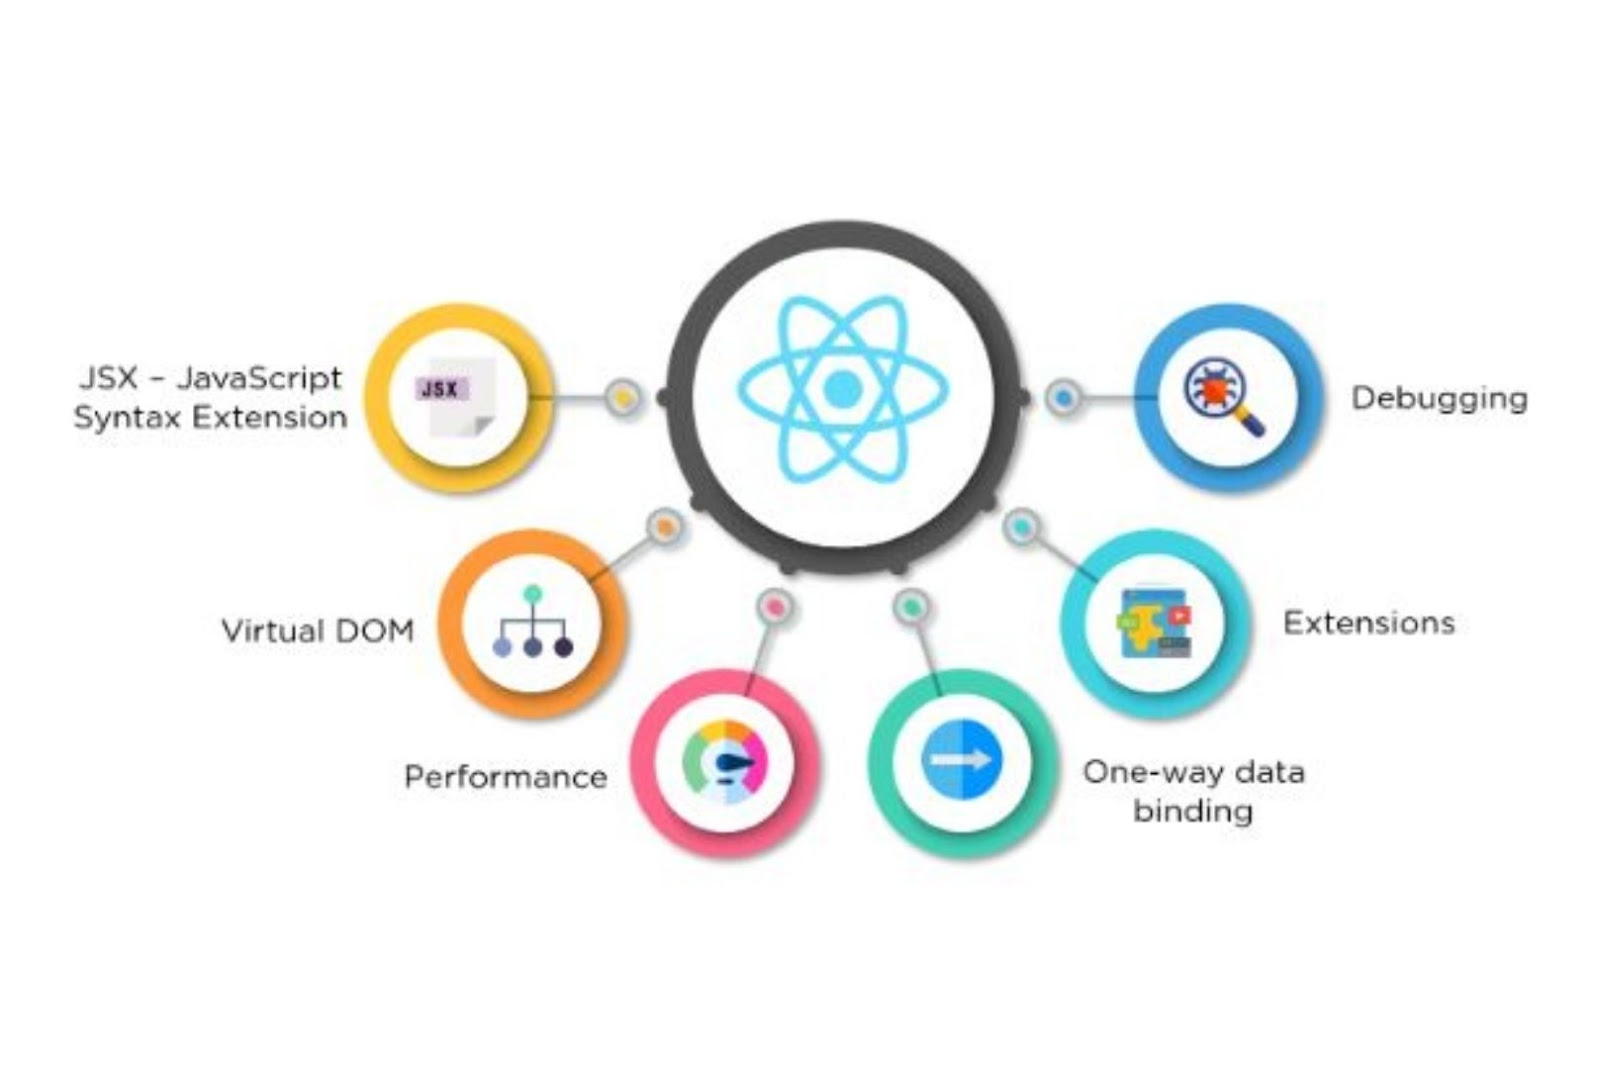 React features for faster web application development